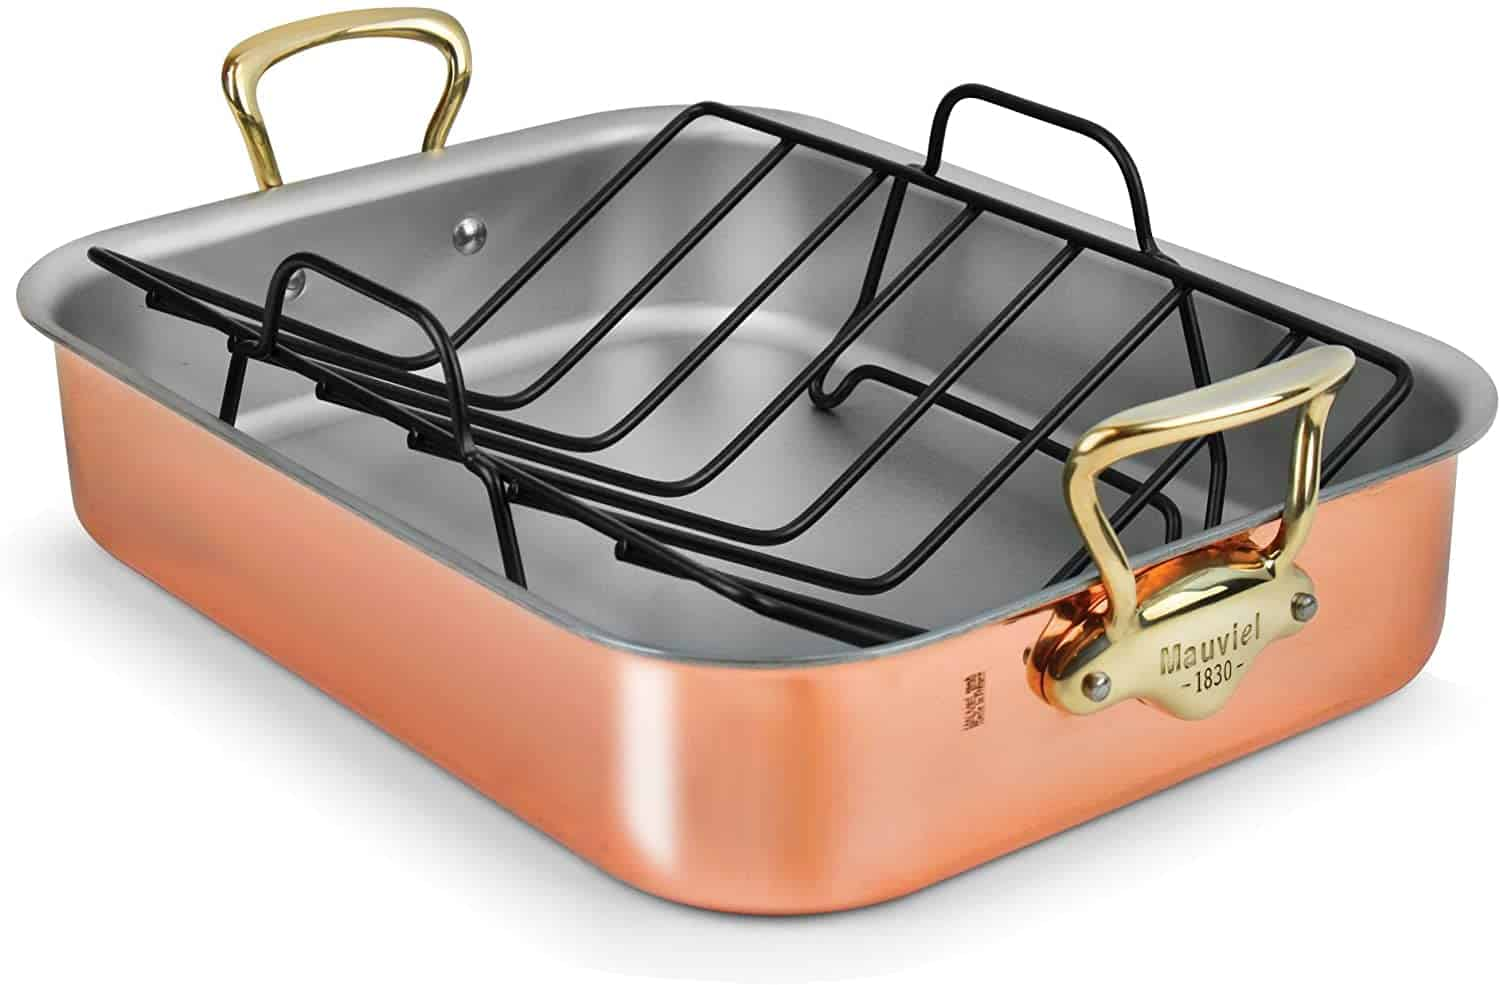 Mauviel copper roasting pan